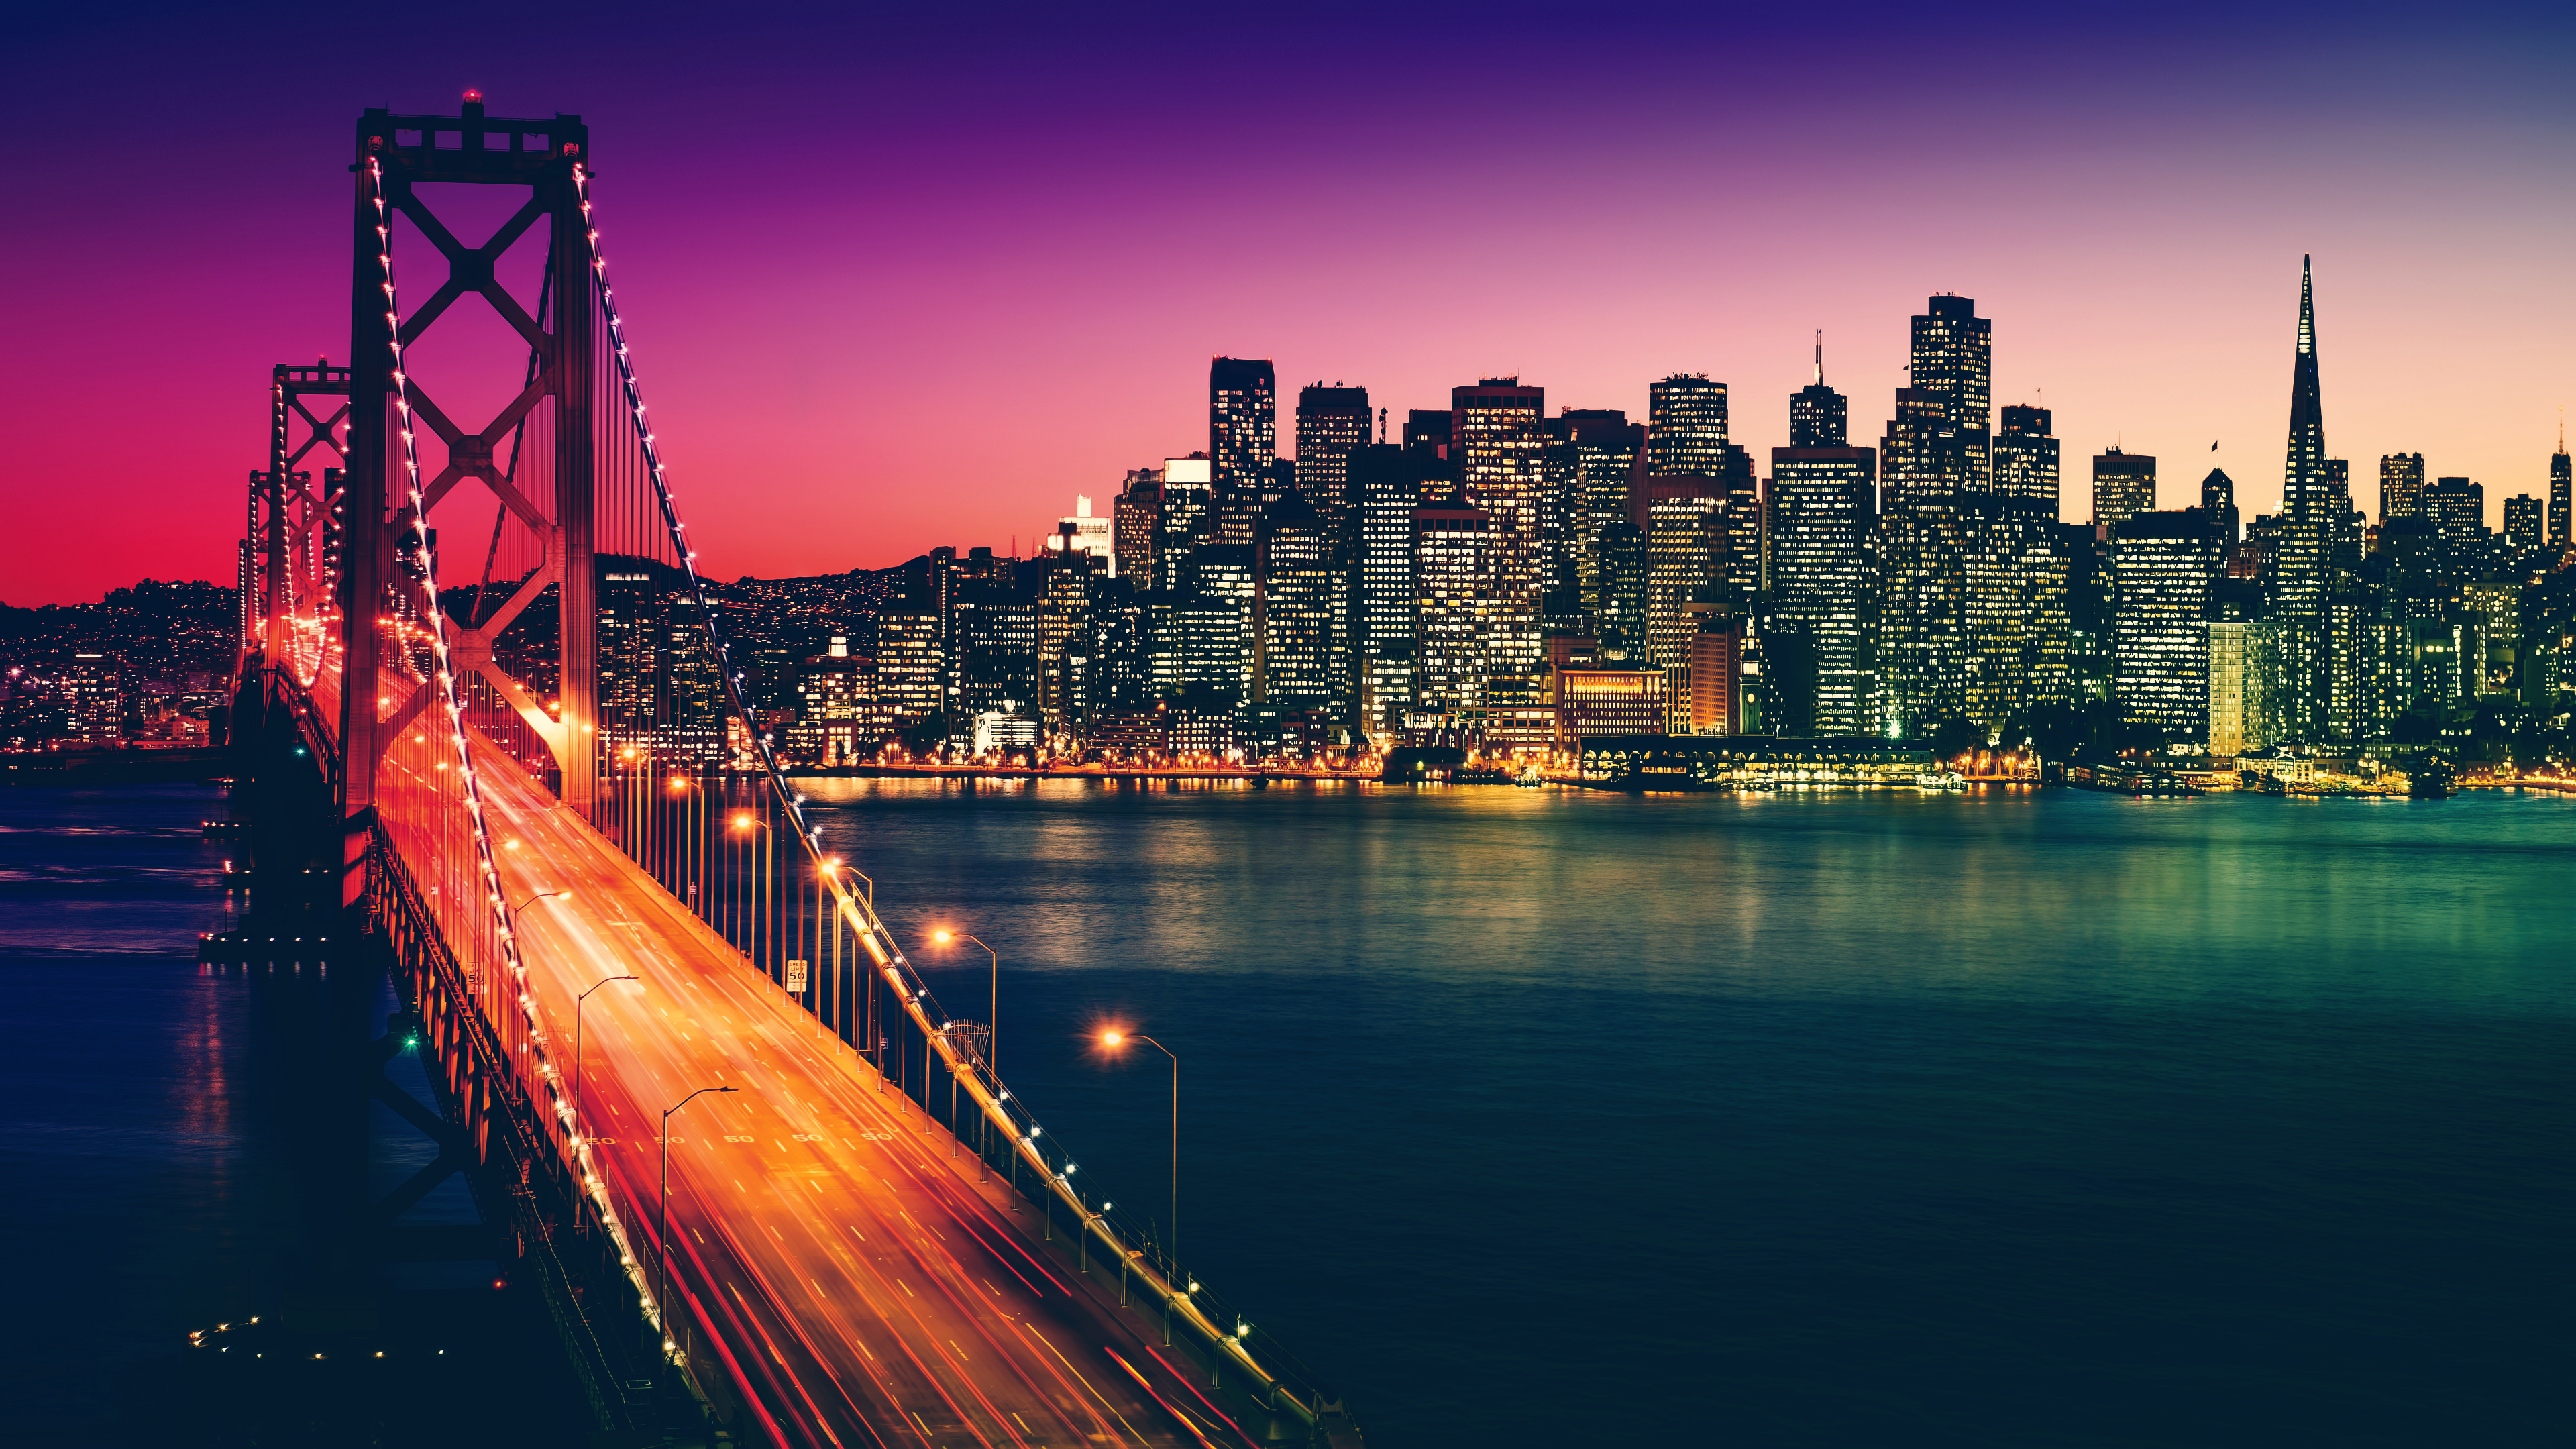 San francisco california cityscape 4k hd world 4k wallpapers images backgrounds photos and - San francisco hd ...